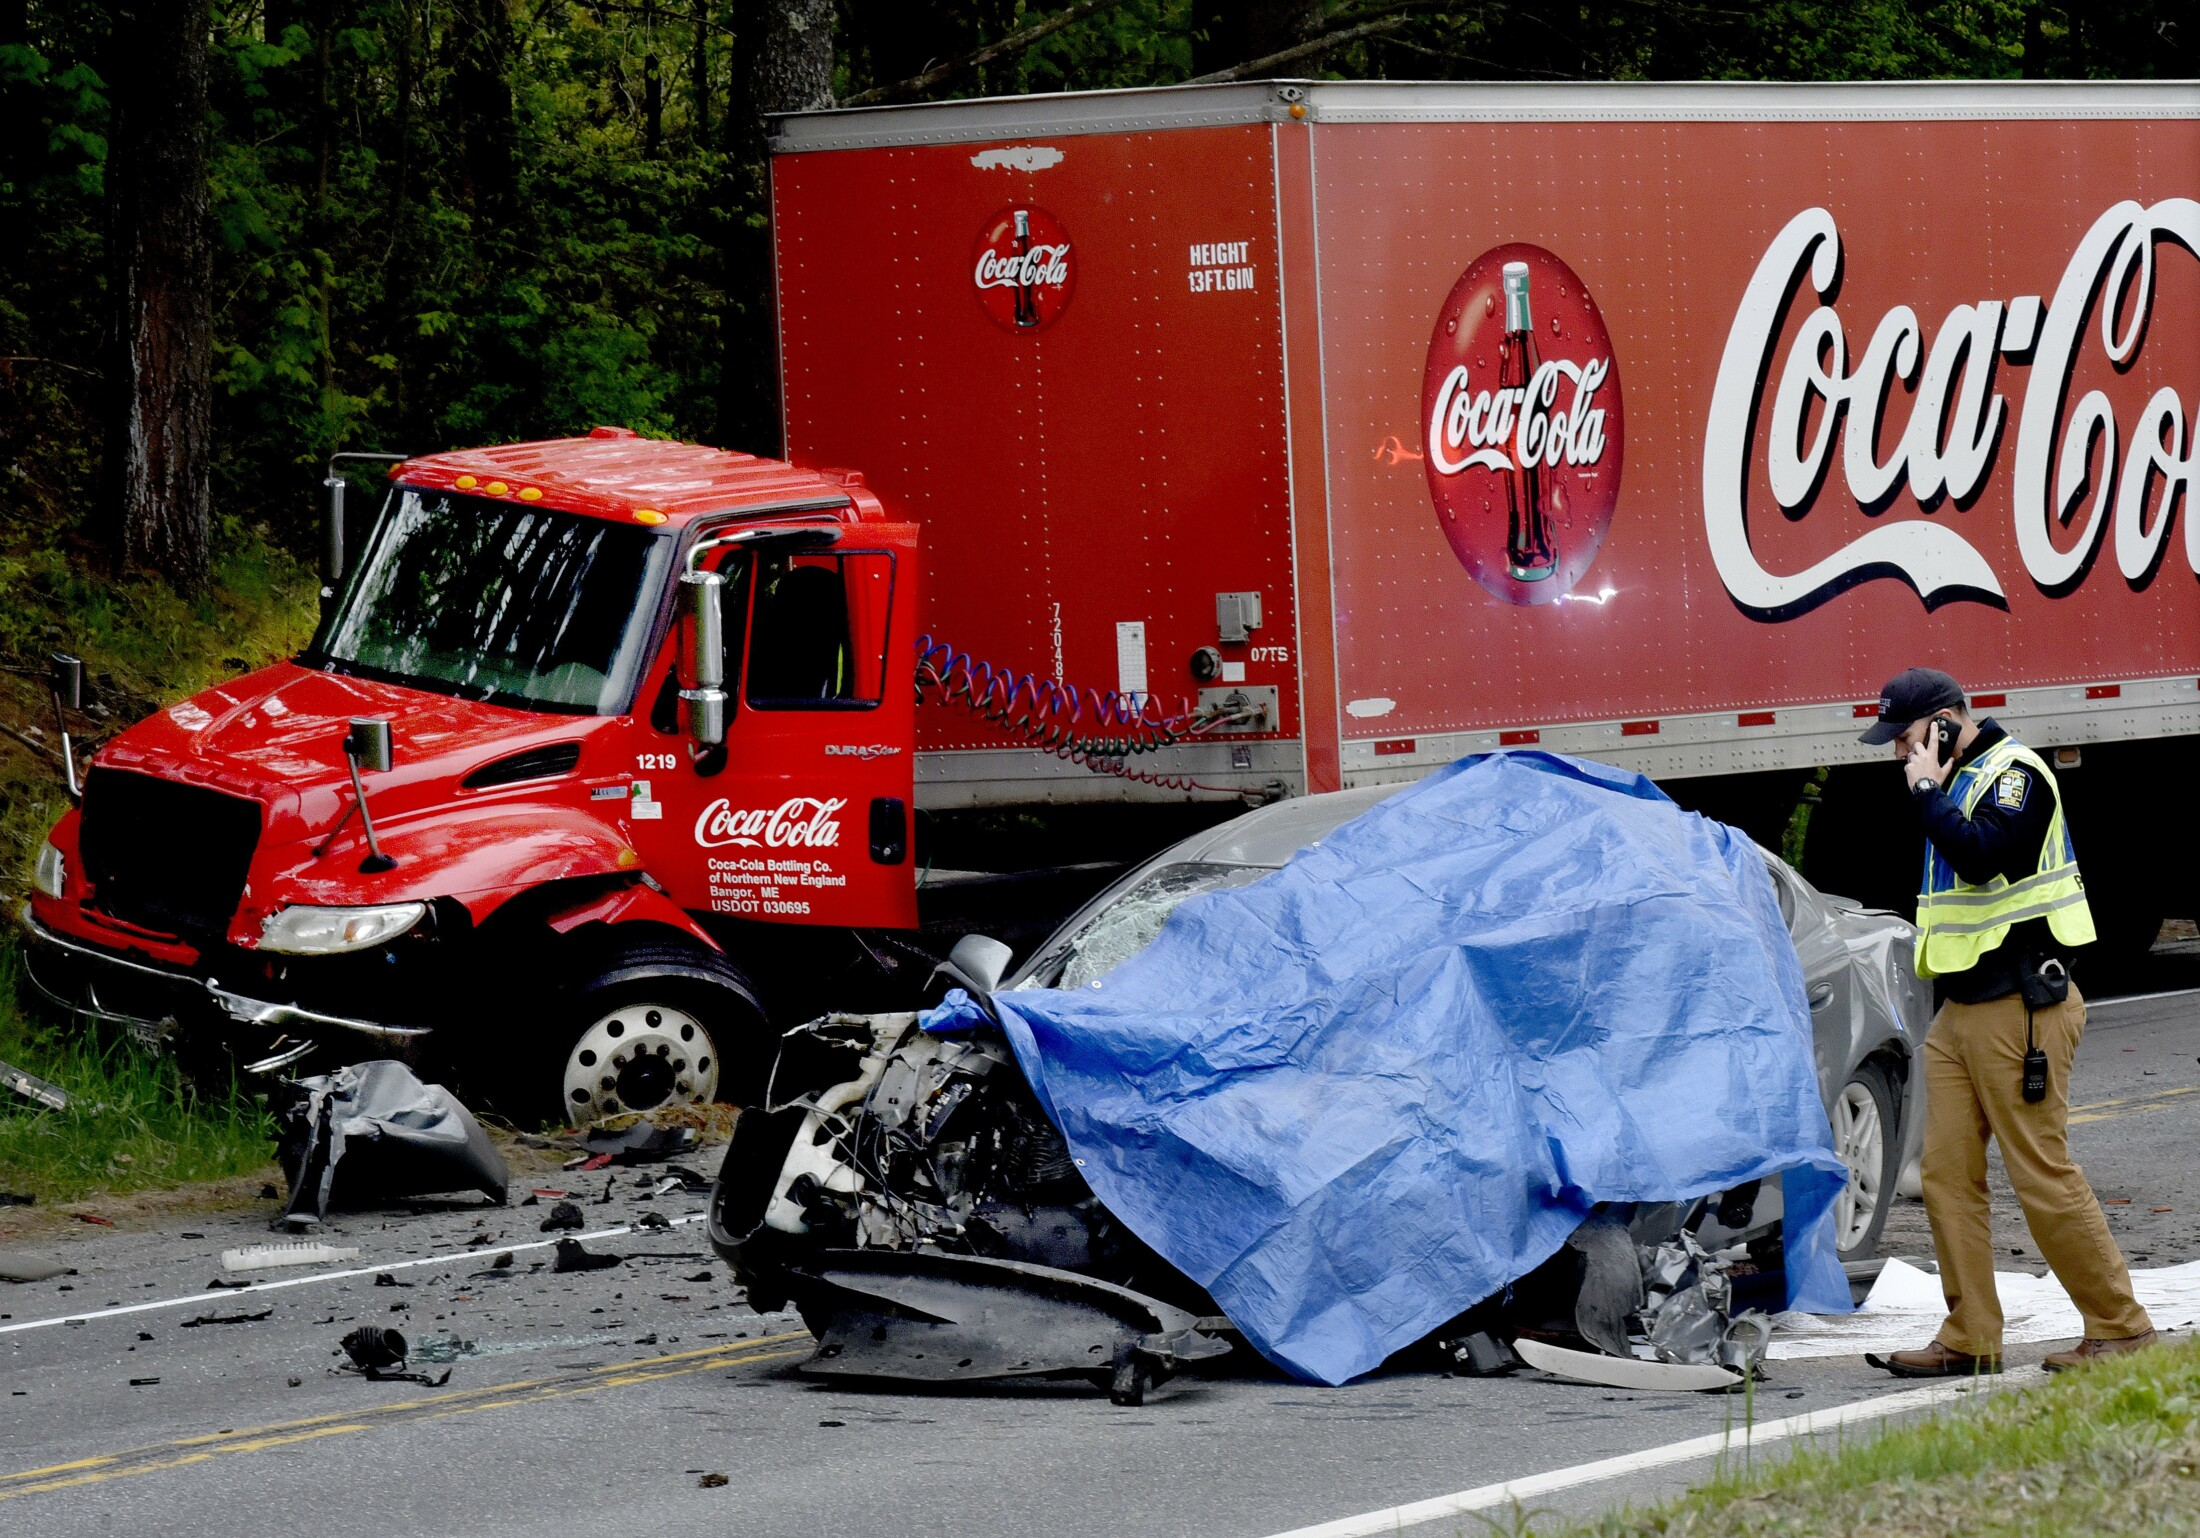 One Dead In Head On Accident On Us Route 2 In Skowhegan